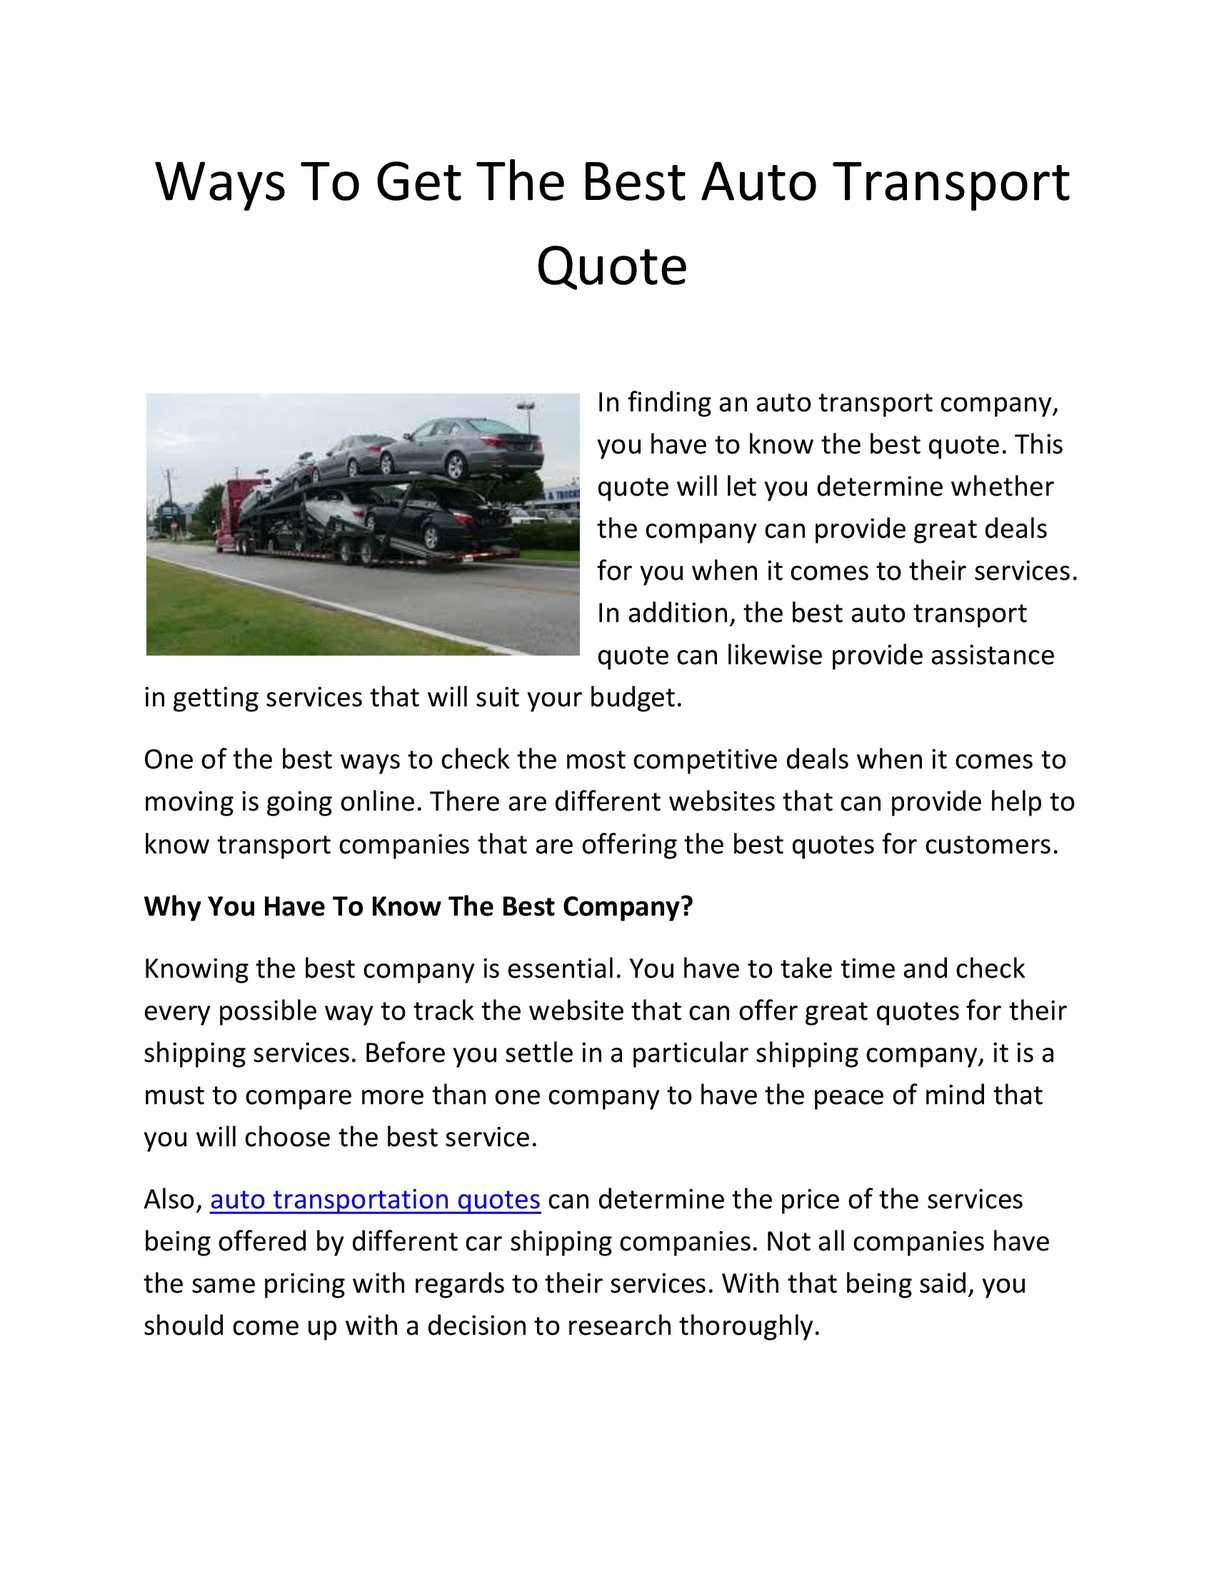 Calaméo - Why to Look for the Best Auto Transport Quotes